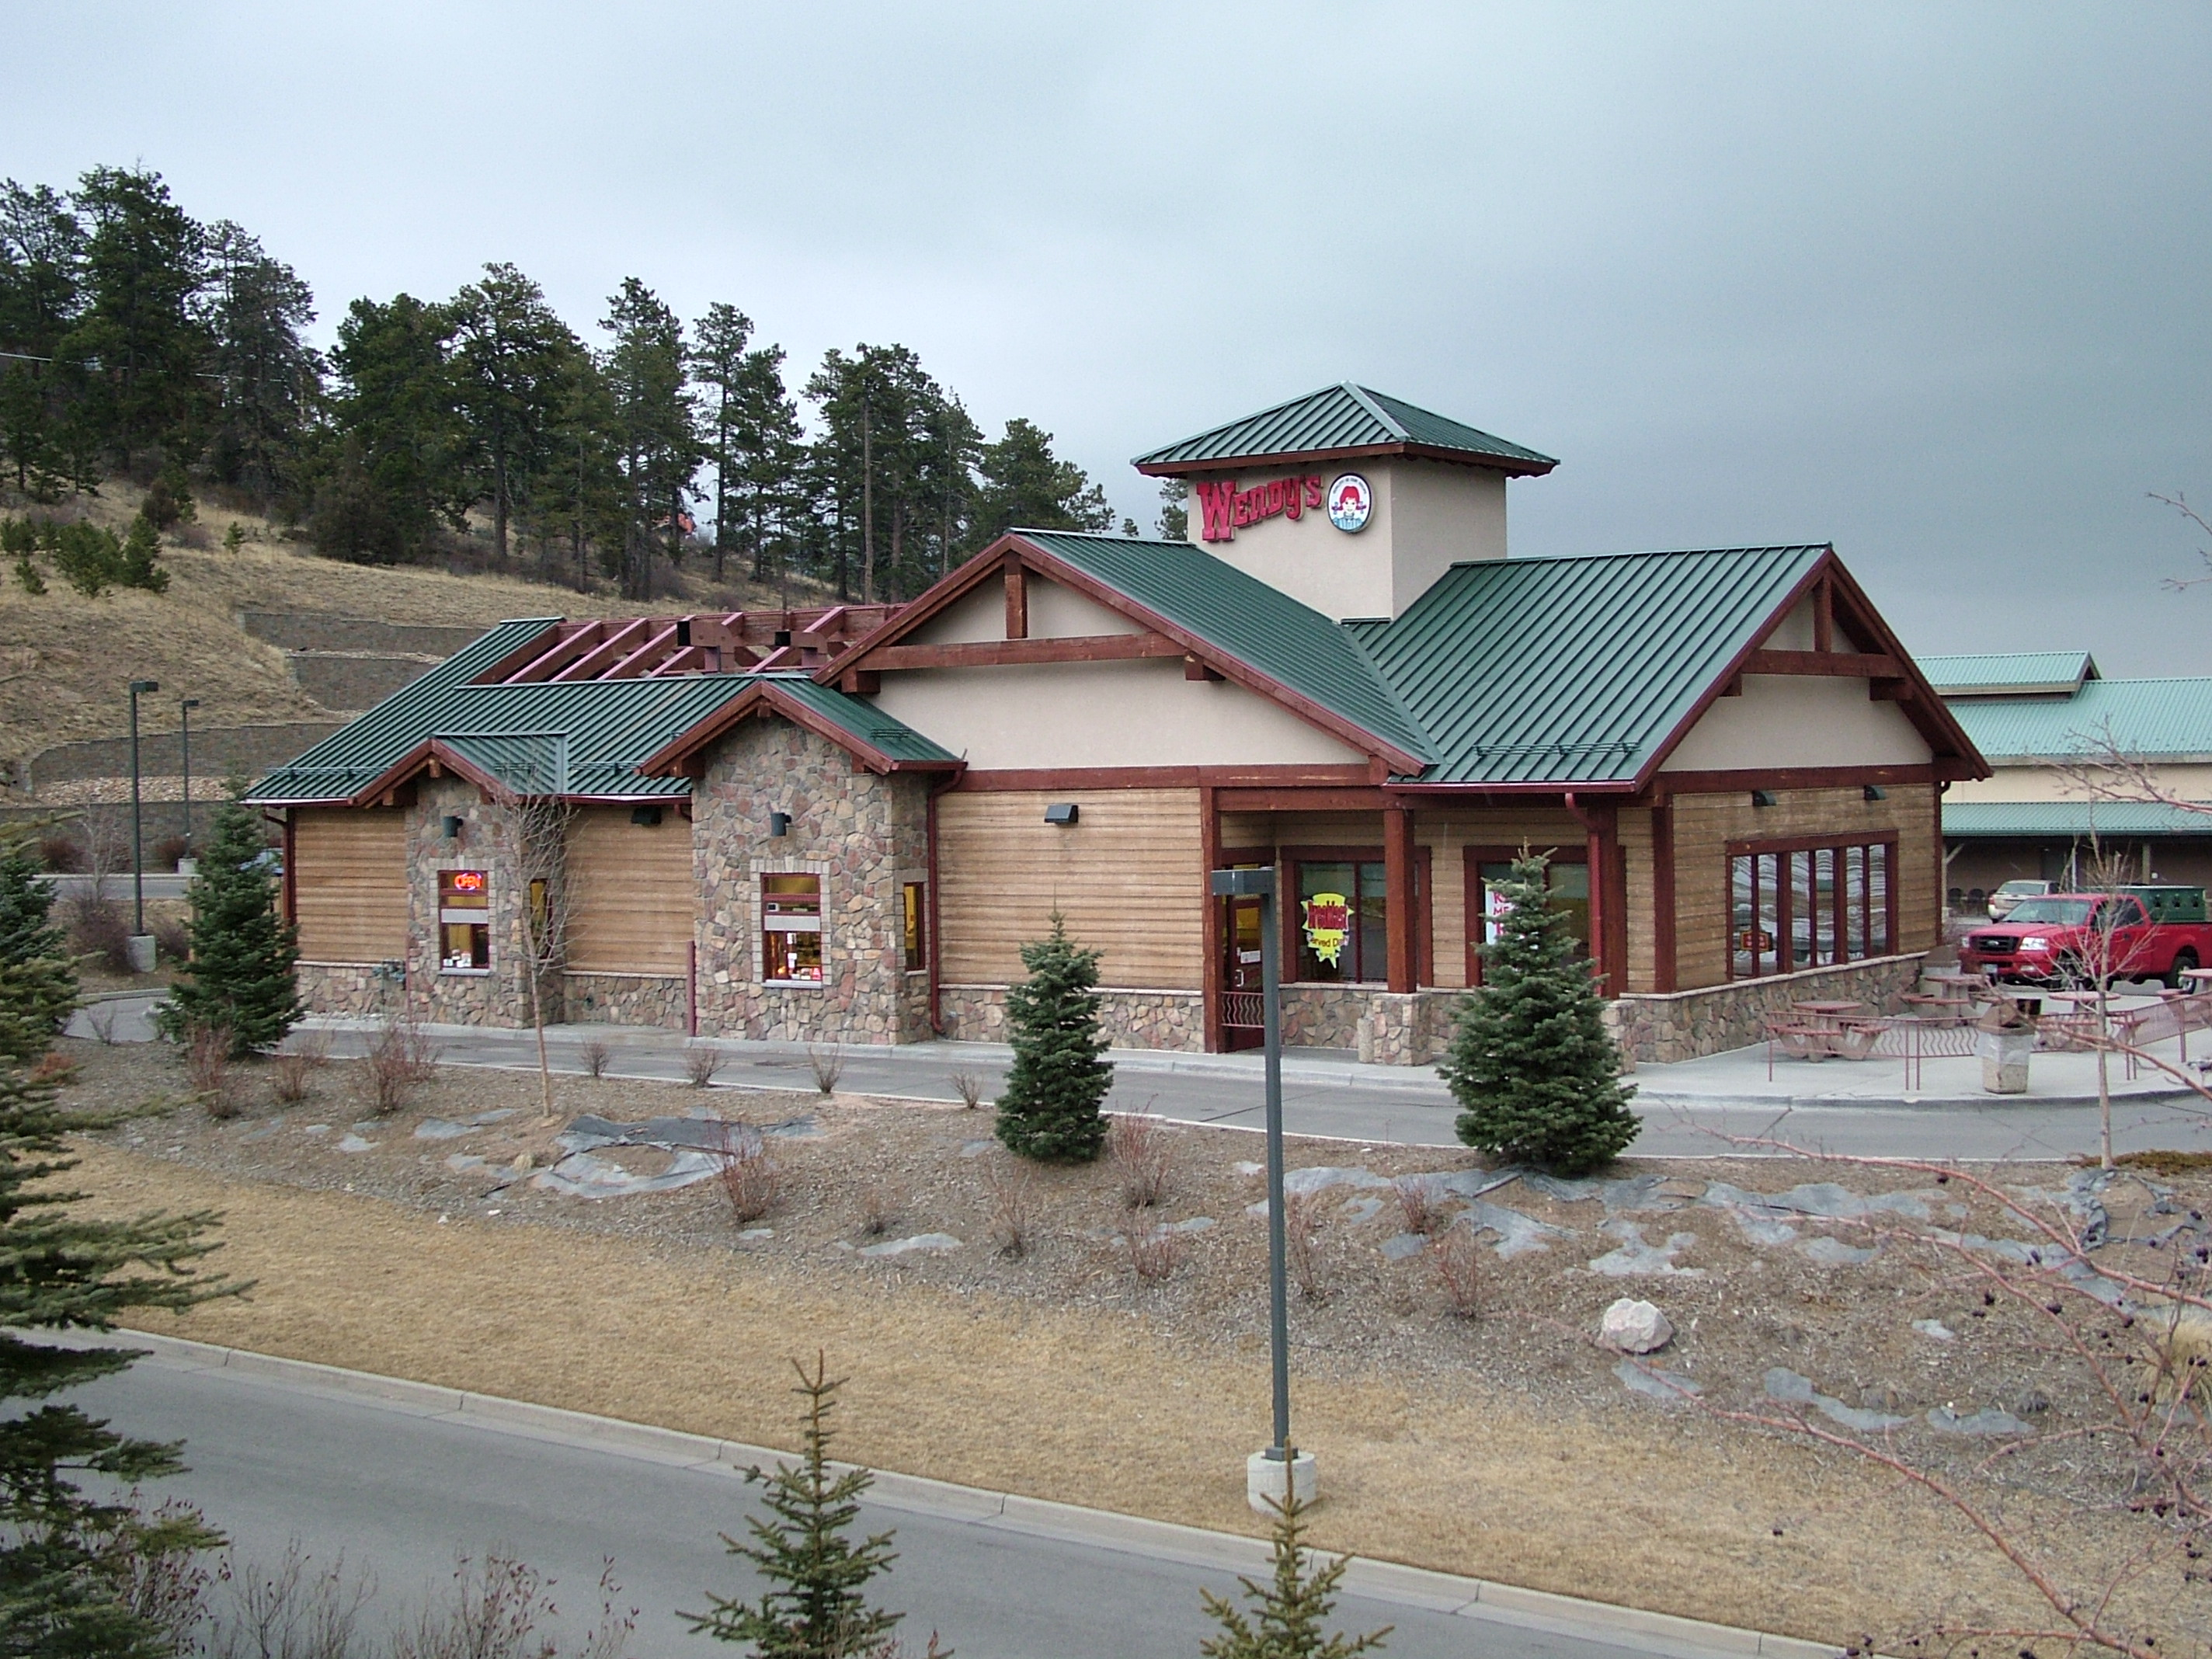 This view shows the main entrance. The building is an adaptation of the owner's Eagle Wendy's prototype that we developed to better reflect mountain architecture.  This version was revised to comply with Conifer's design guidelines.